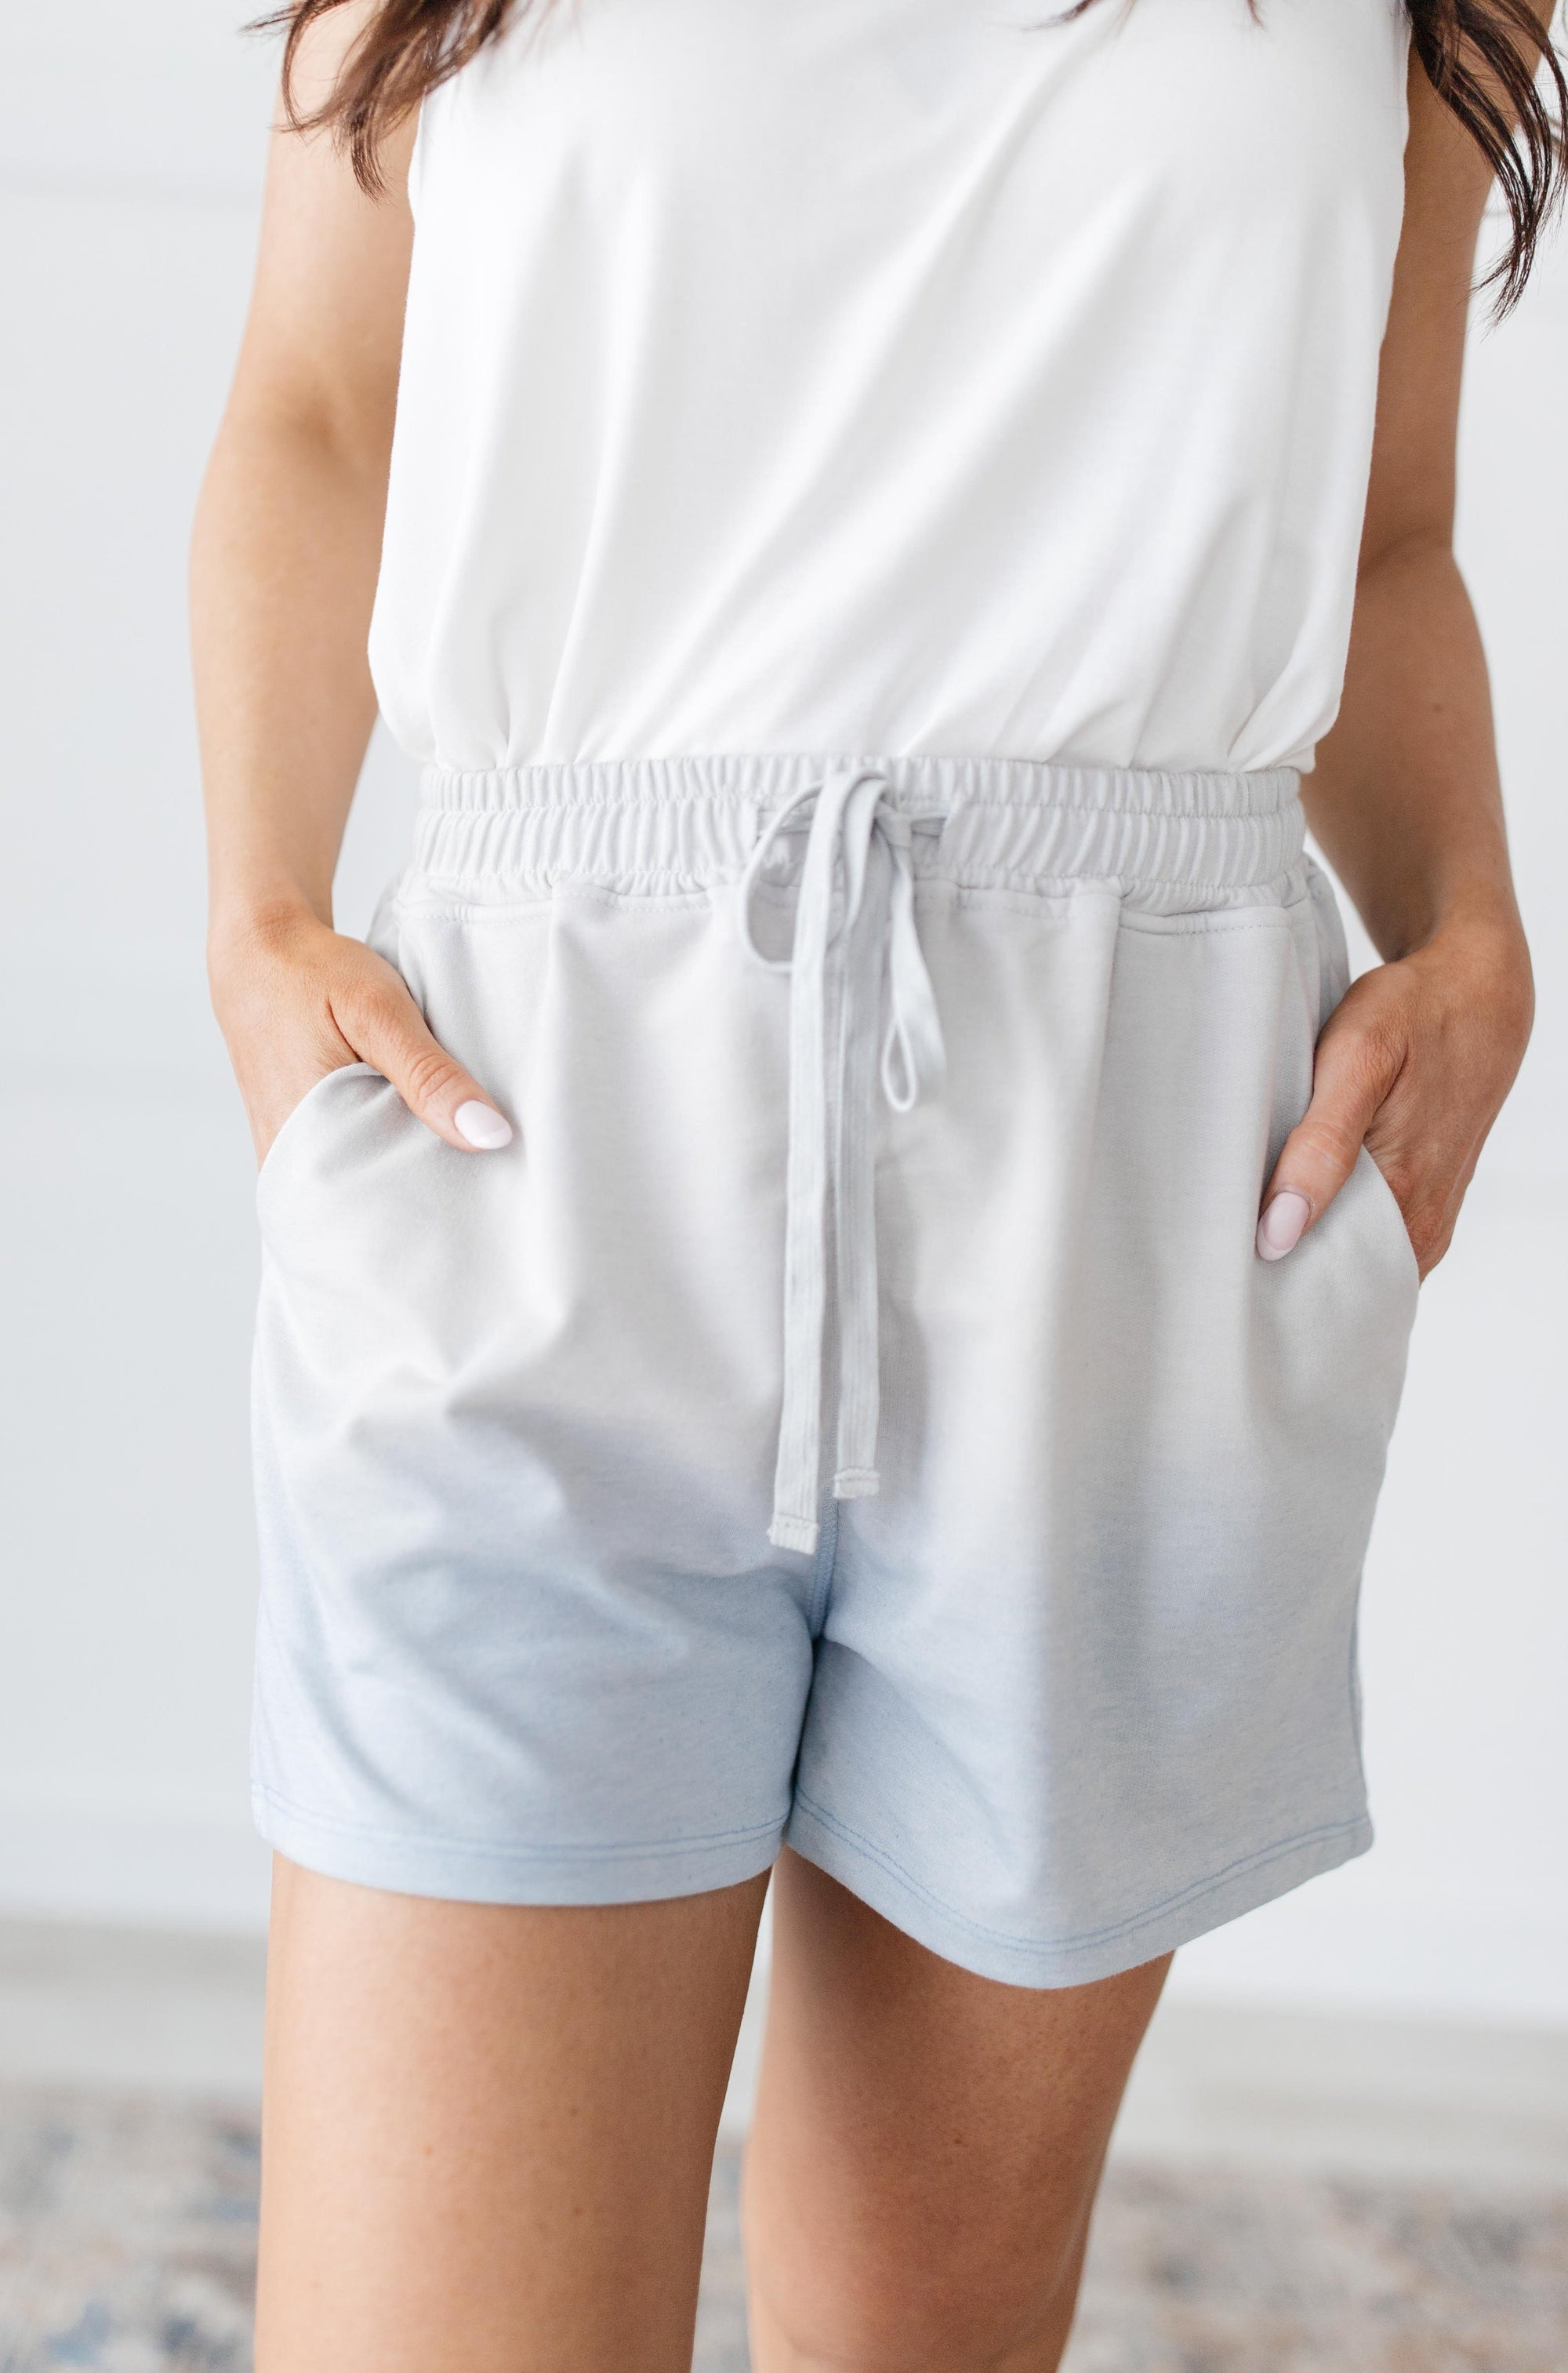 A Hint Of Melting Shorts-[option4]-[option5]-[option6]-[option7]-[option8]-Womens-Clothing-Shop